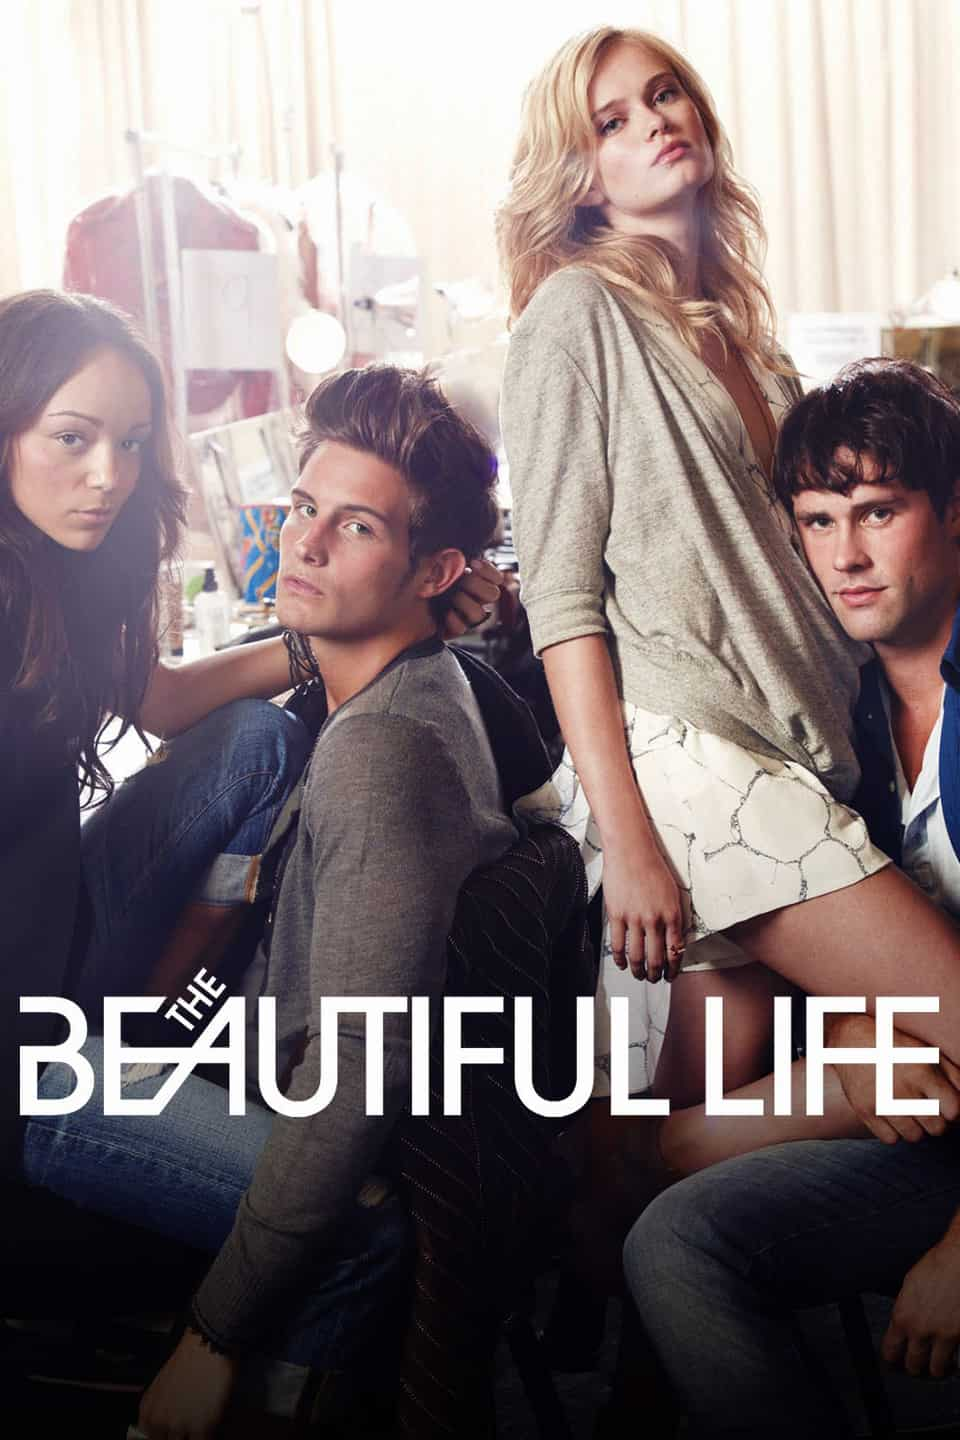 The Beautiful Life: TBL, 2009